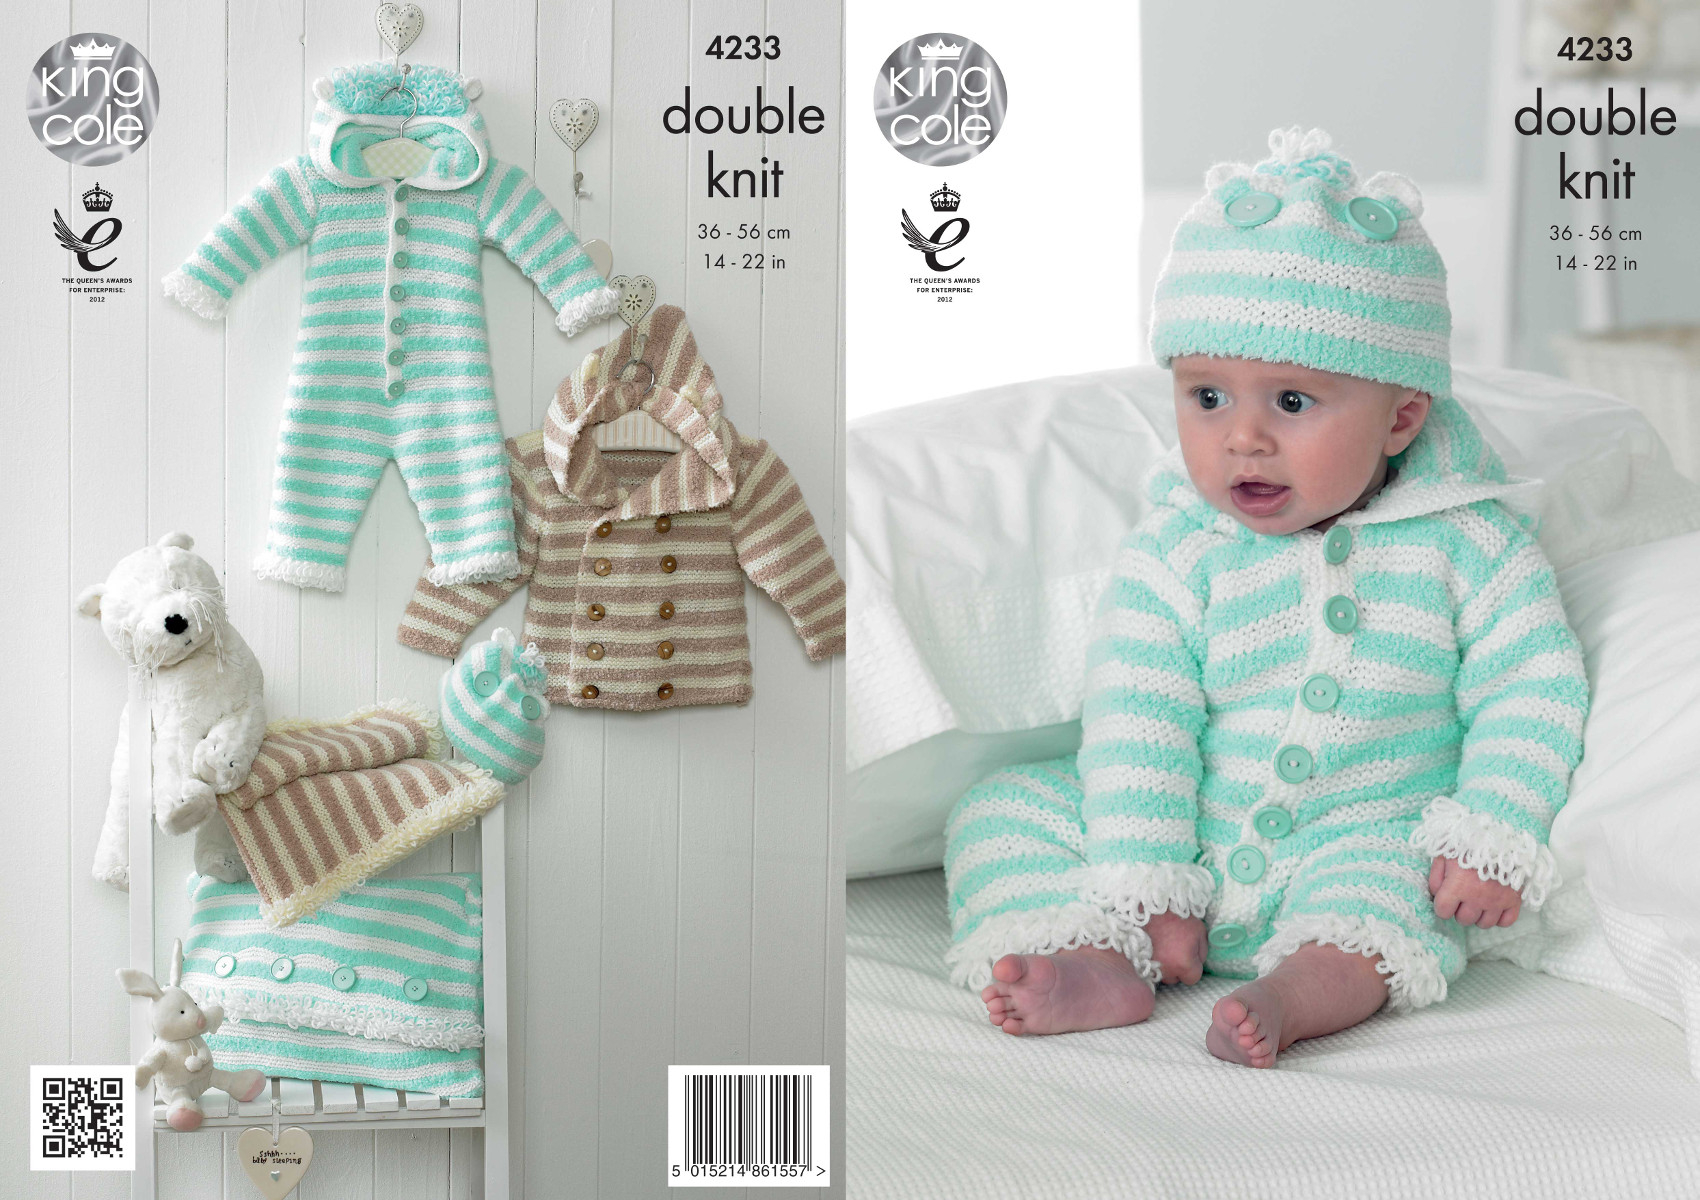 Double Knitting Baby Patterns Details About King Cole Cuddles Dk Double Knit Pattern Ba All In One Coat Hat Blanket 4233